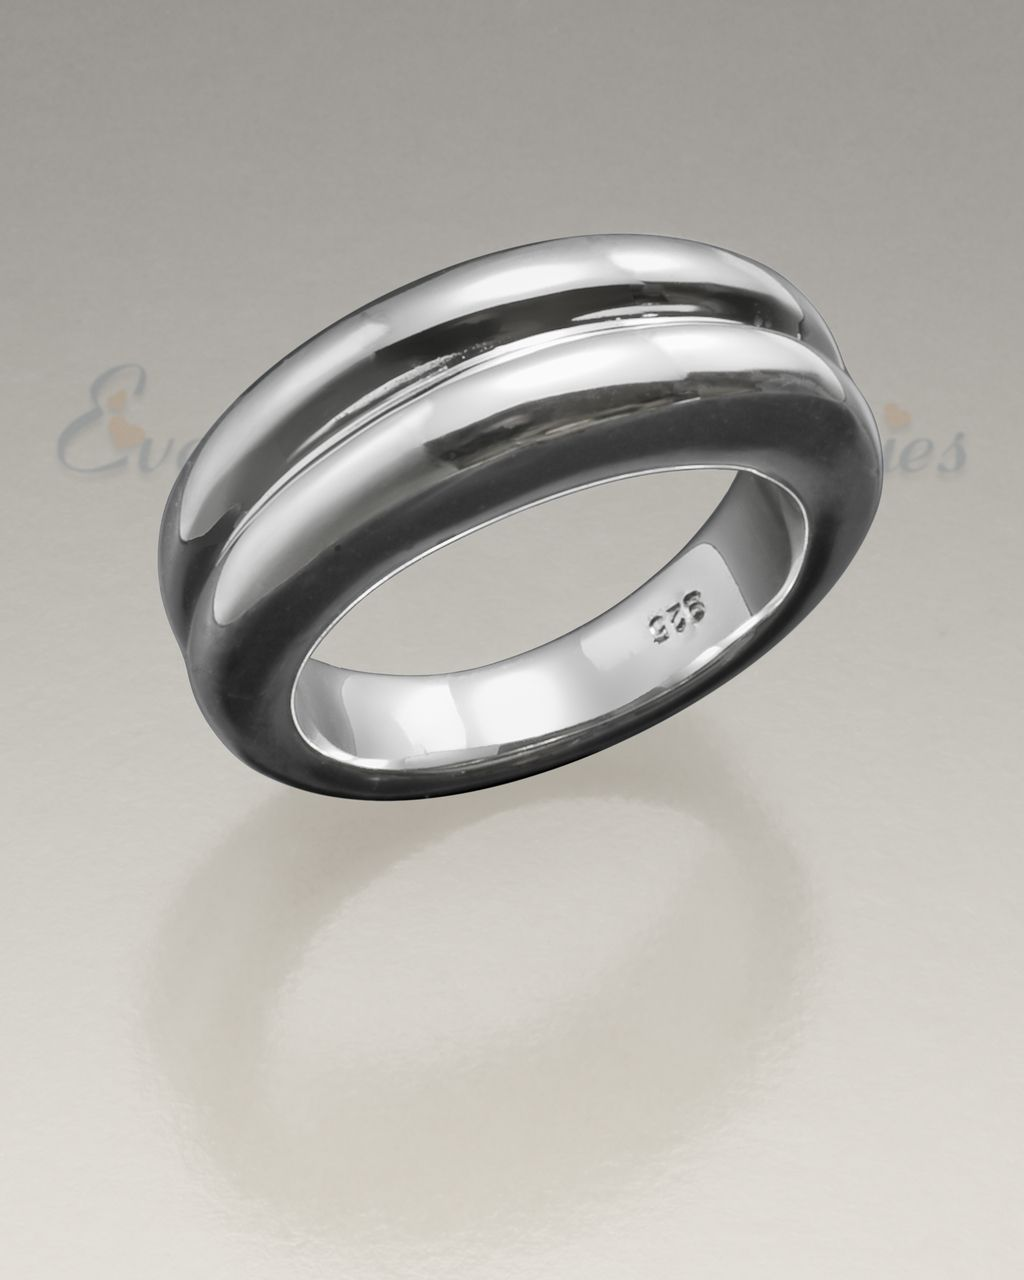 image rings urn stainless steel is heart love silver ashes screwdriver loading itm cremation